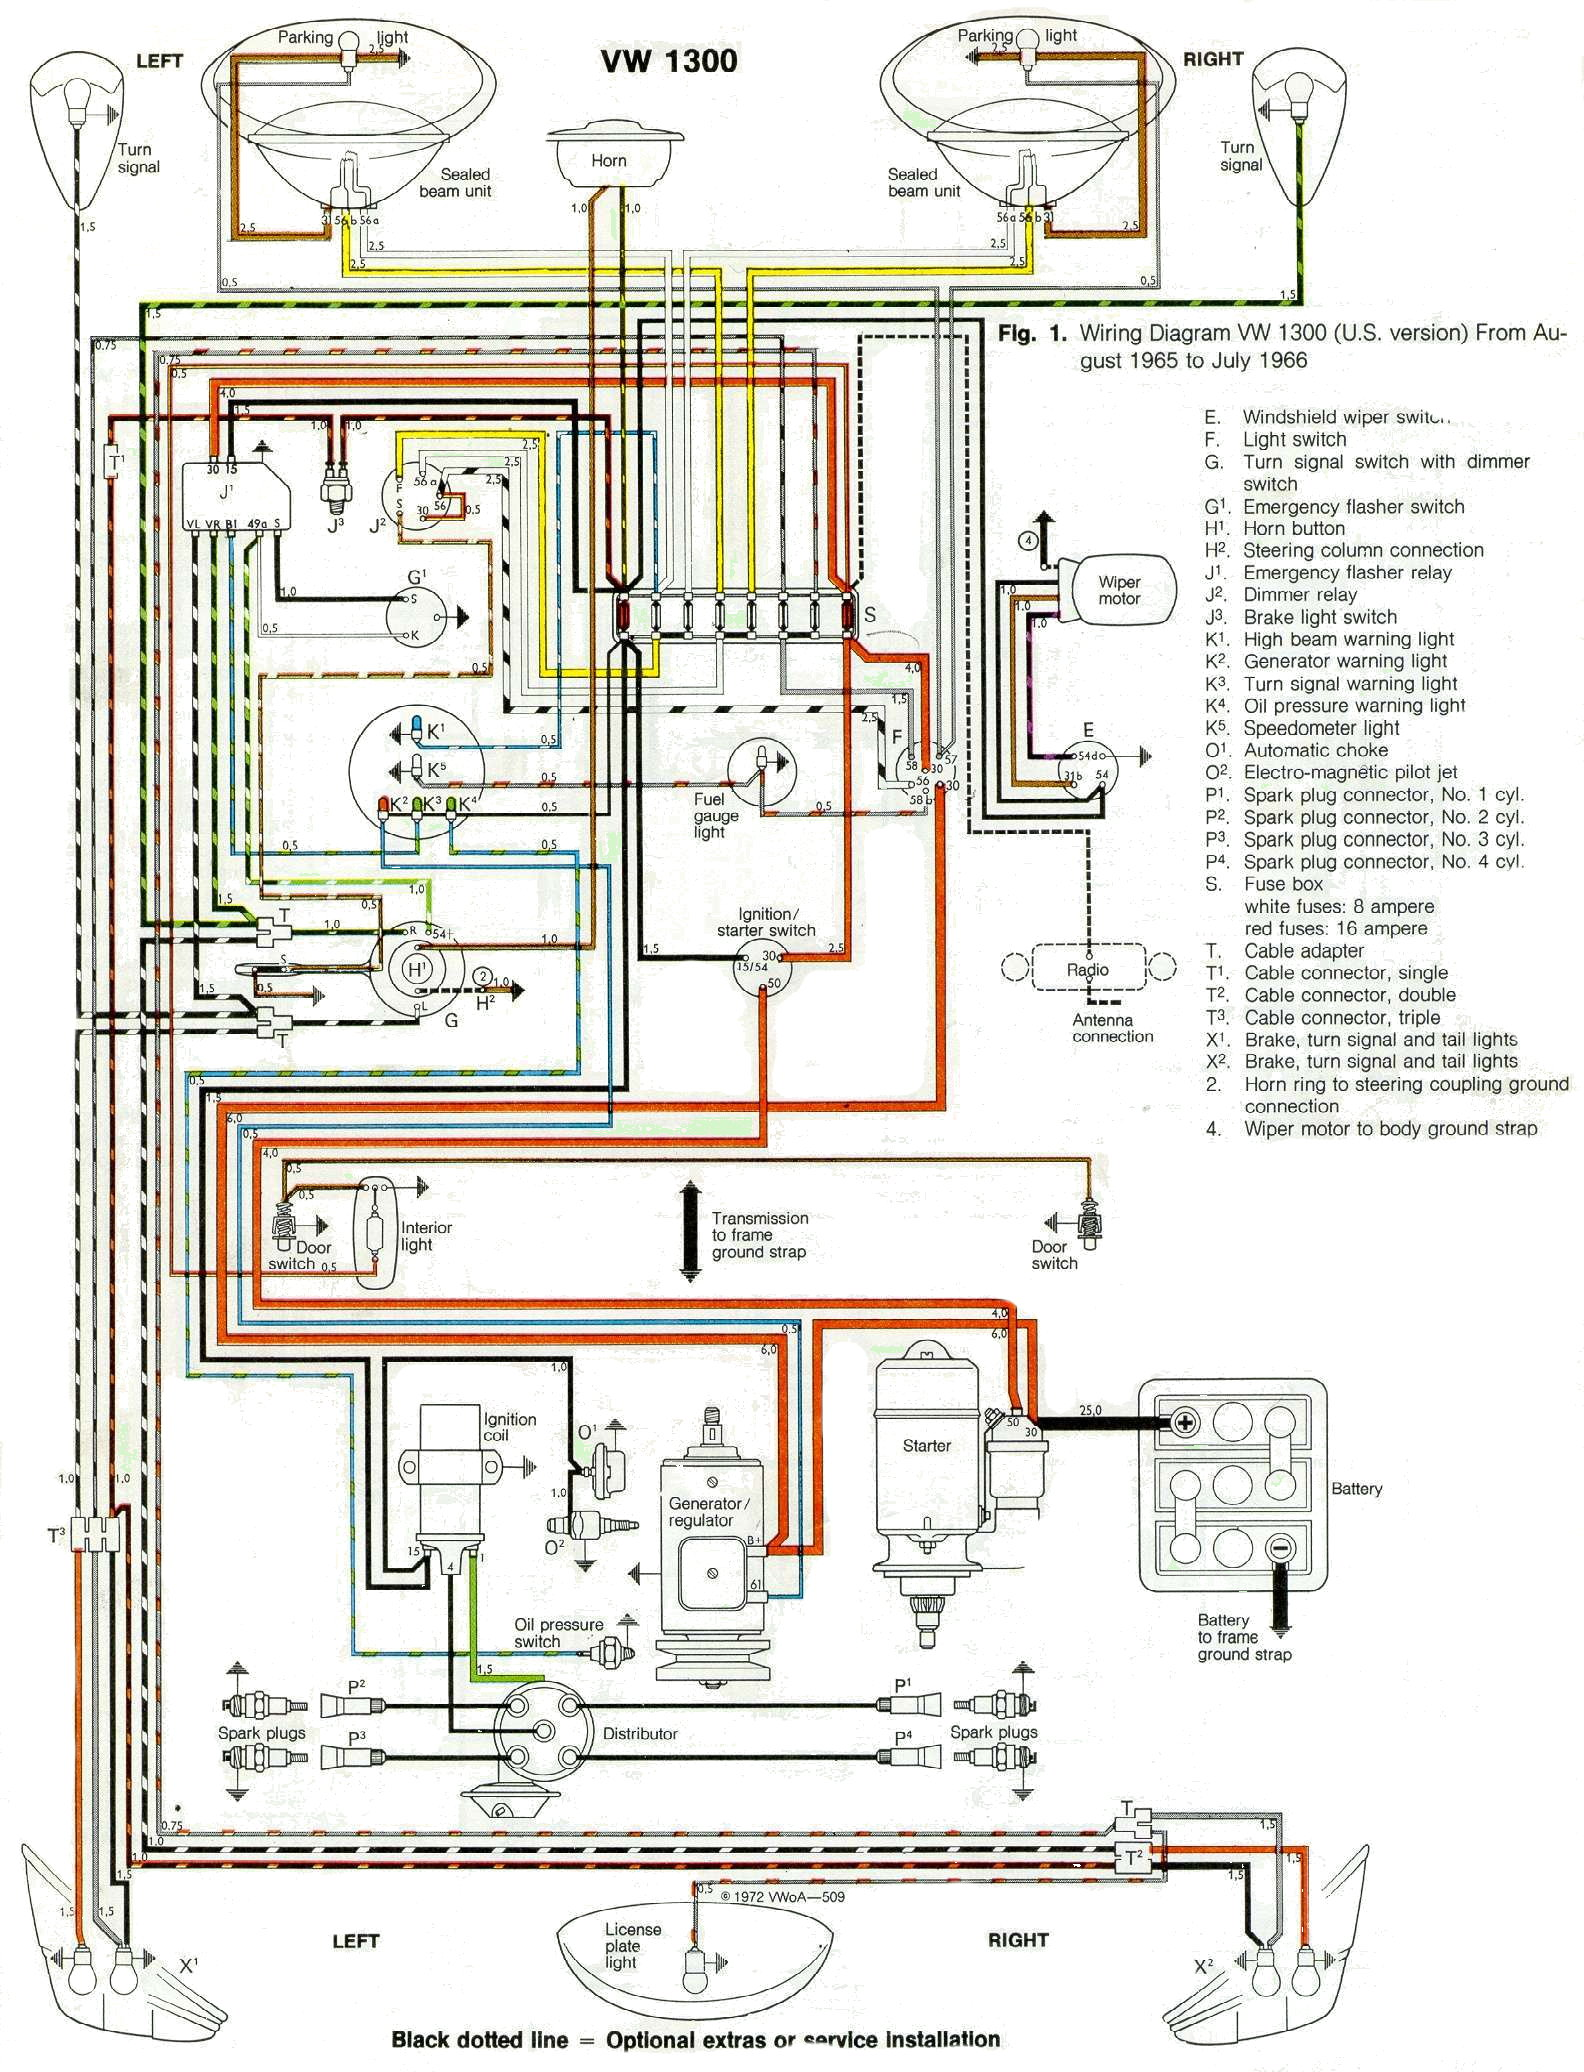 1966 Wiring 1966 wiring diagram vw wiring diagrams at pacquiaovsvargaslive.co